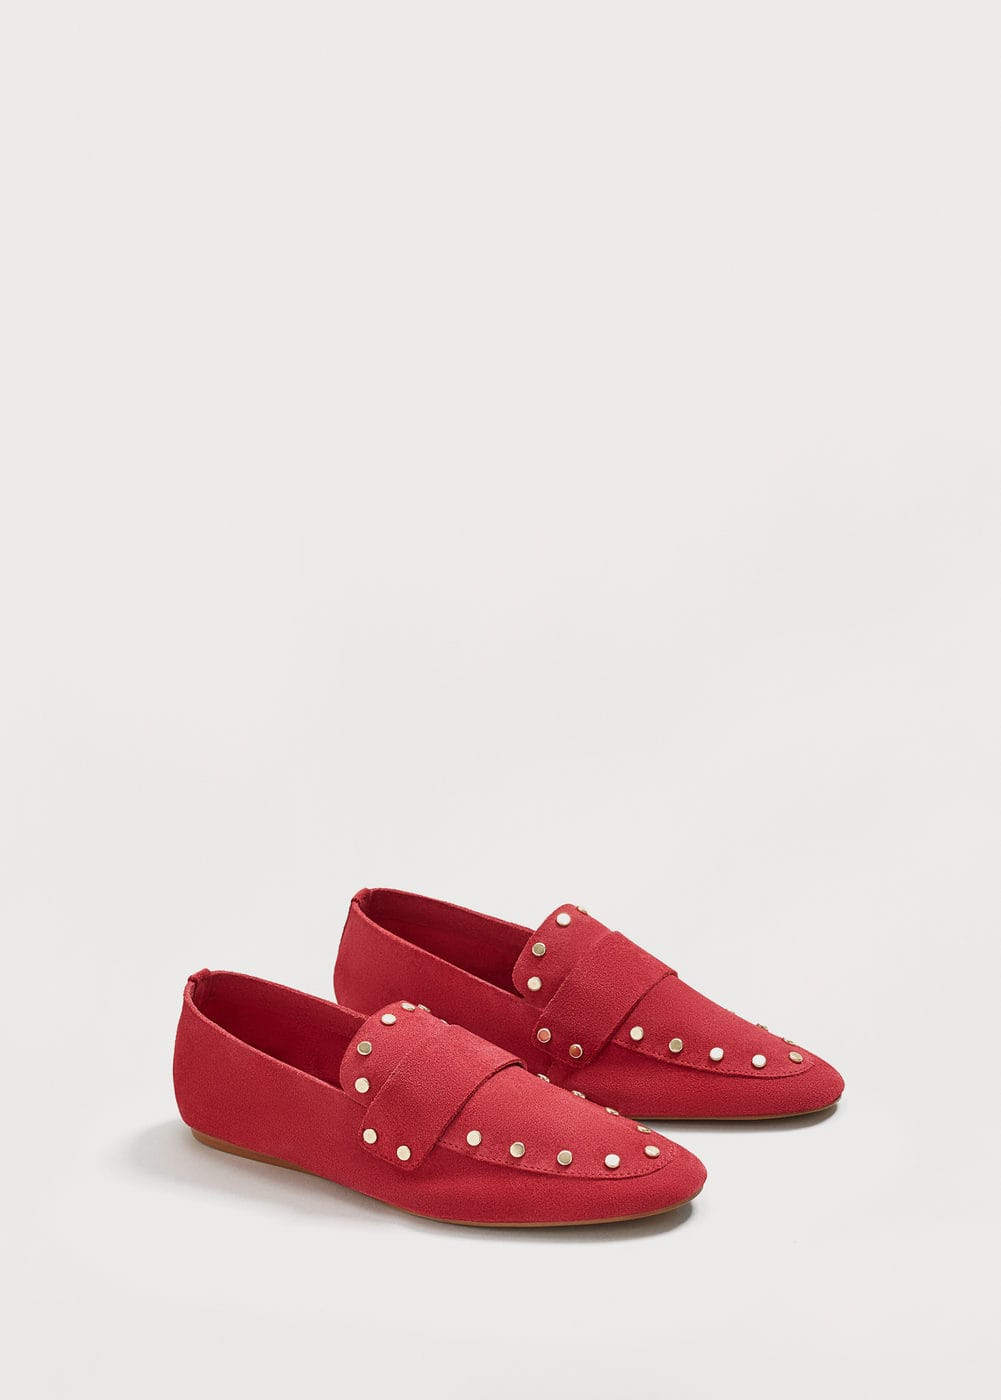 Studded leather loafers | VIOLETA BY MNG